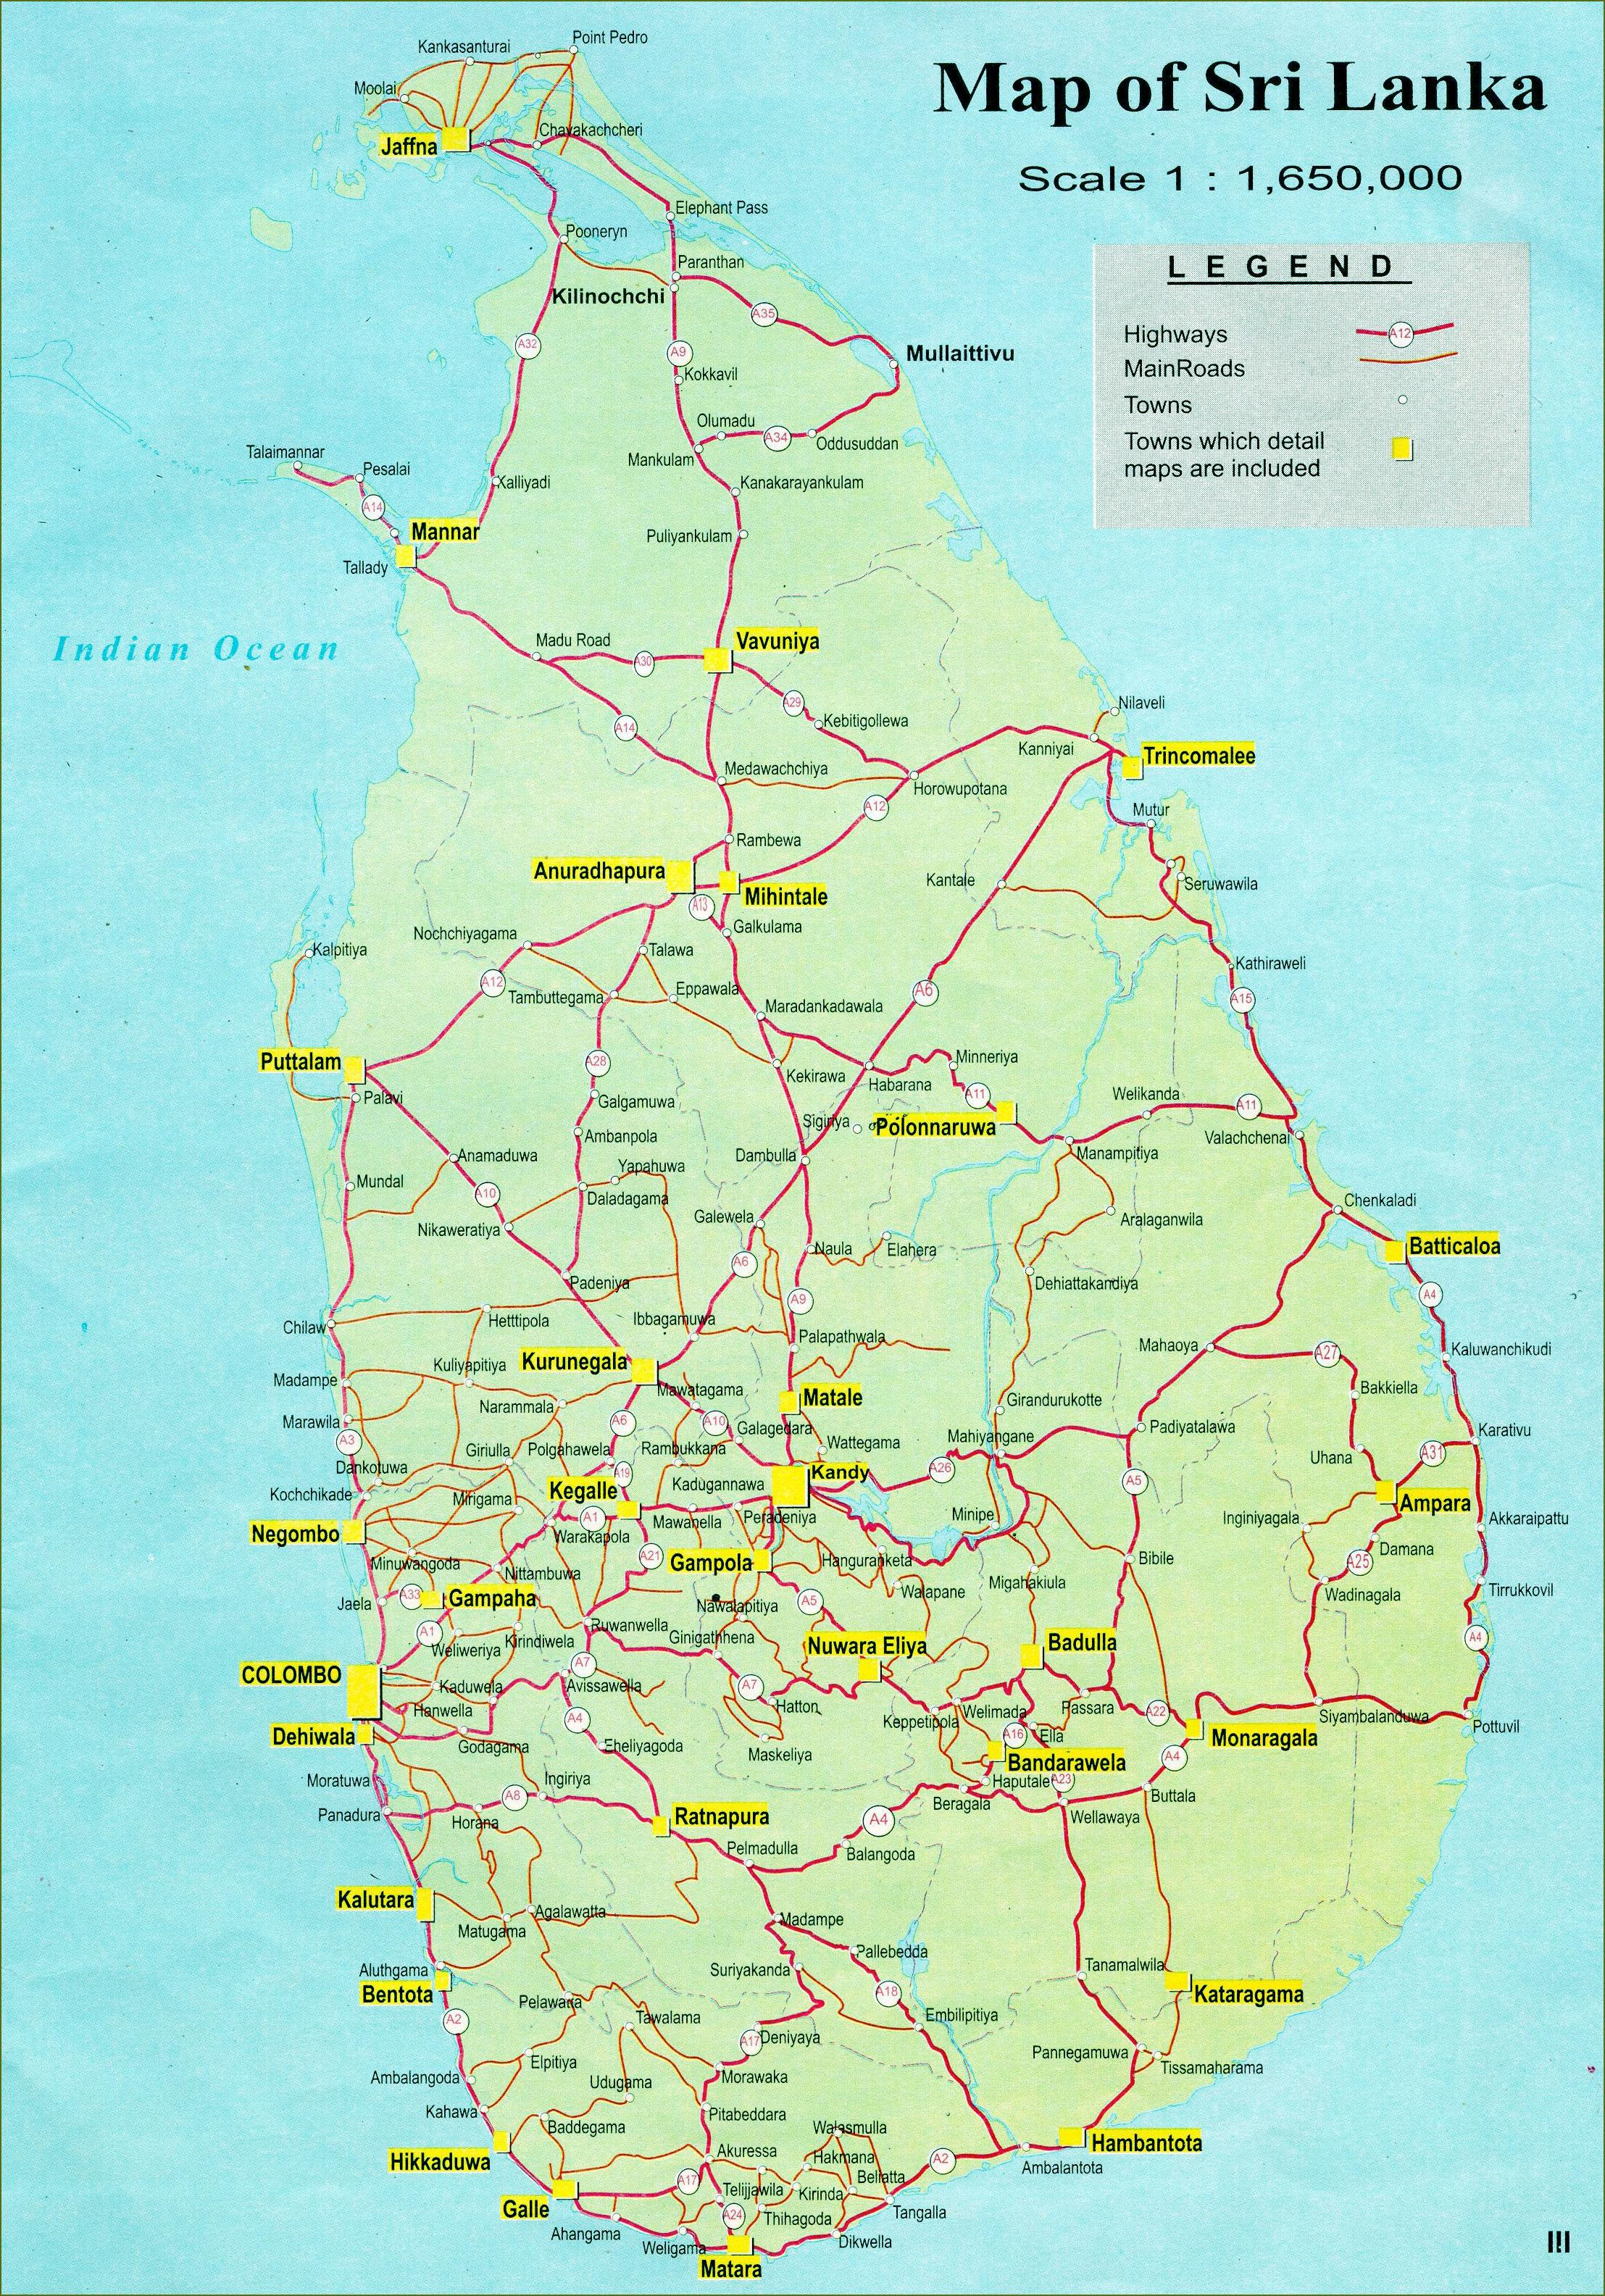 Map Of Asia Sri Lanka.Sri Lanka Road Map Road Distance Map Of Sri Lanka Southern Asia